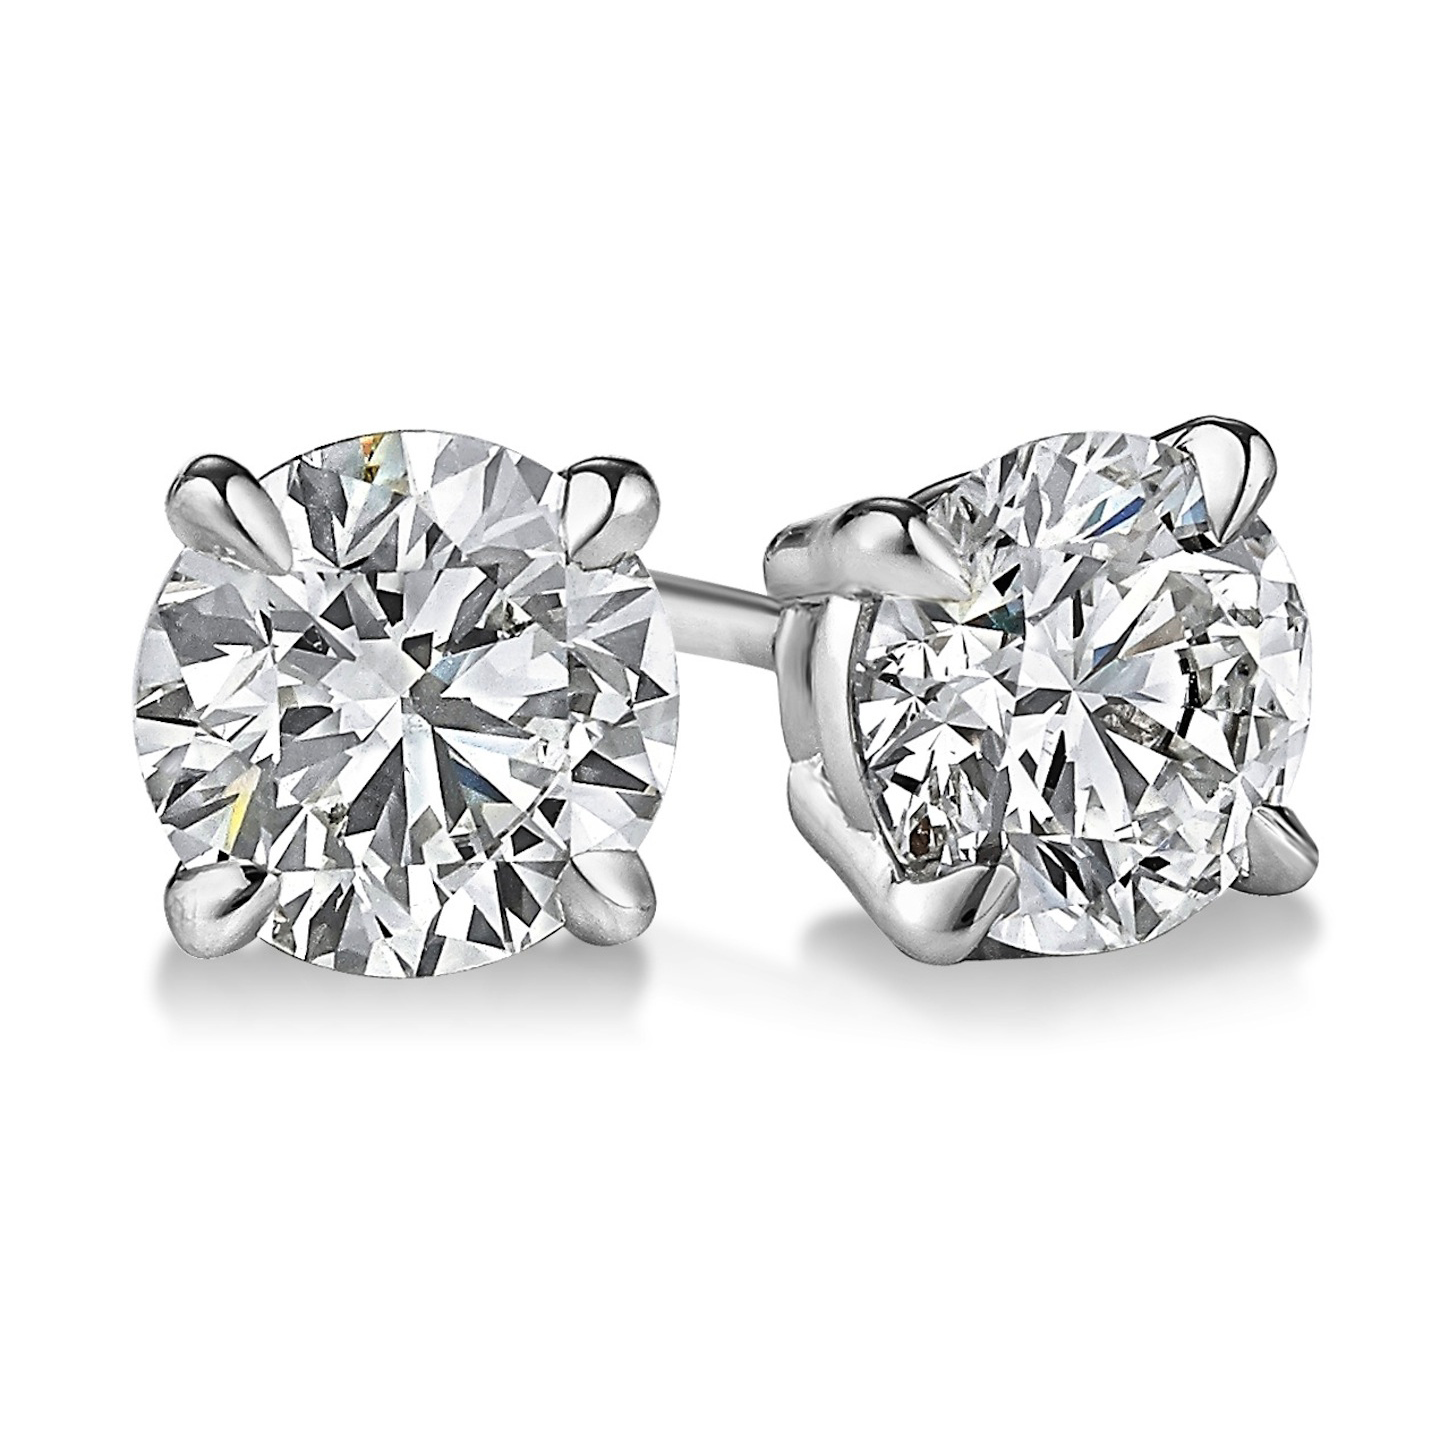 jewellers earrings diamond qp gold in white stud ctw dimond